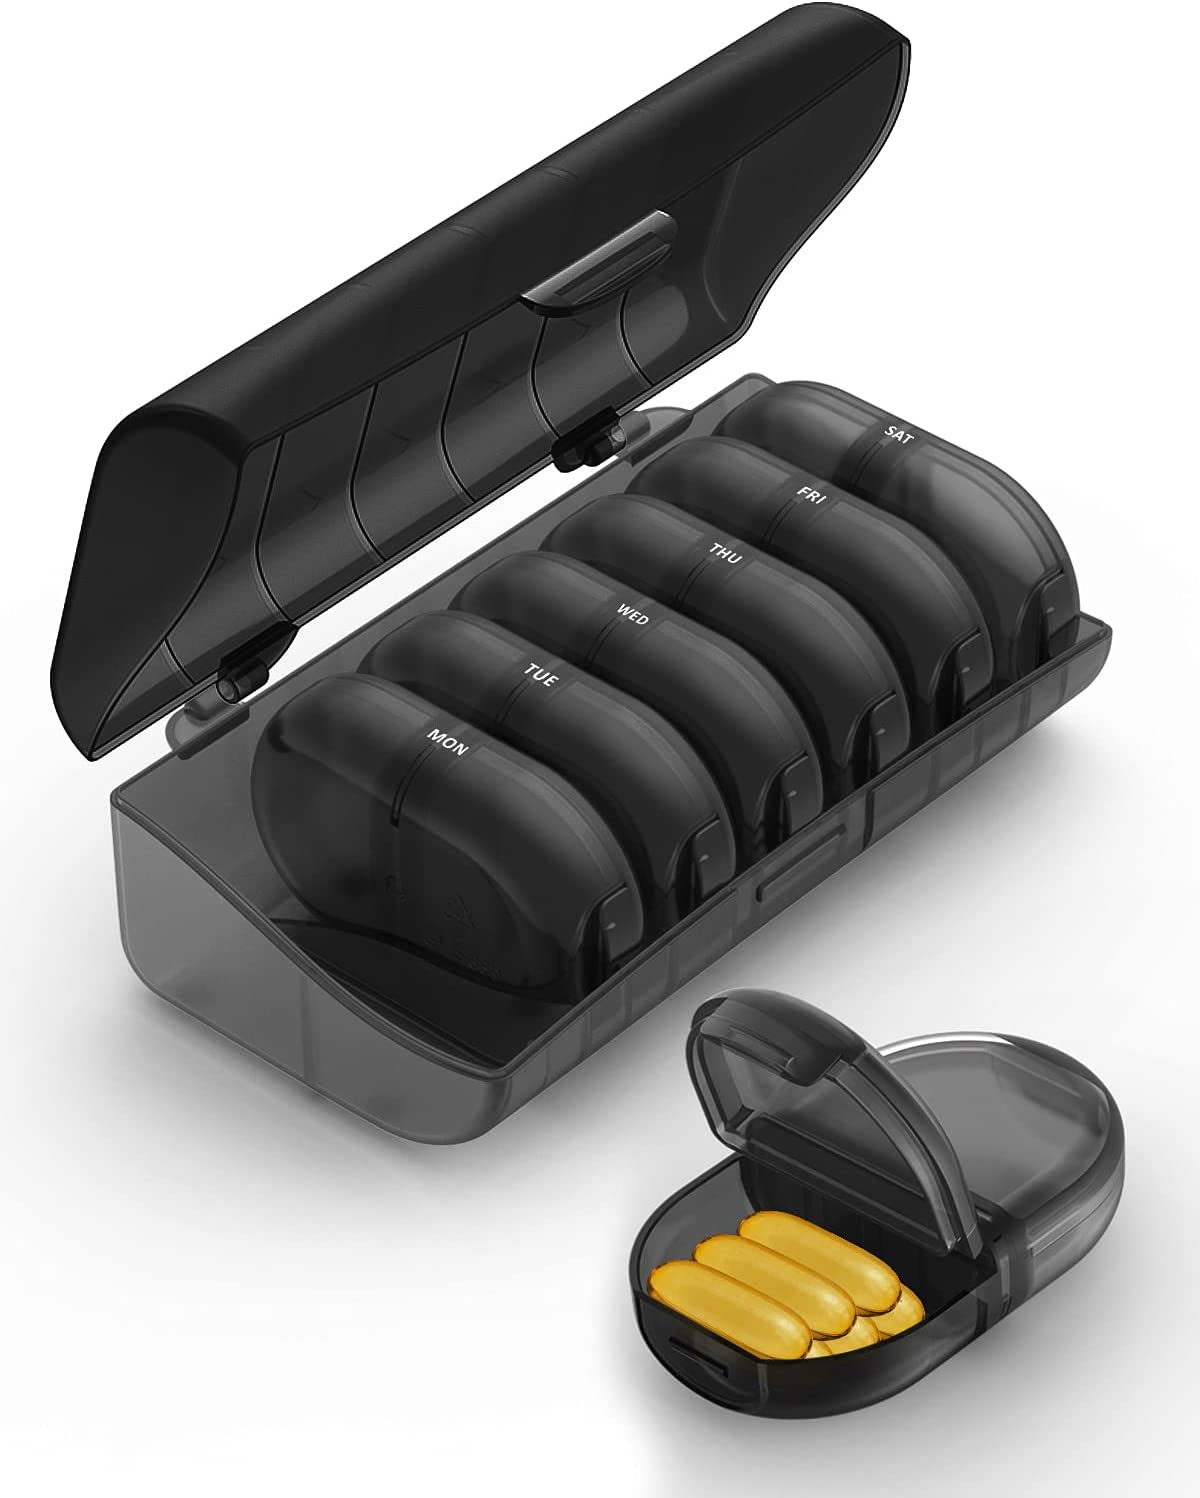 Fullicon Pill Organizer 2 Times a Day, Weekly Pill Box AM PM Daily Pill Cases Medicine Box - (Black)